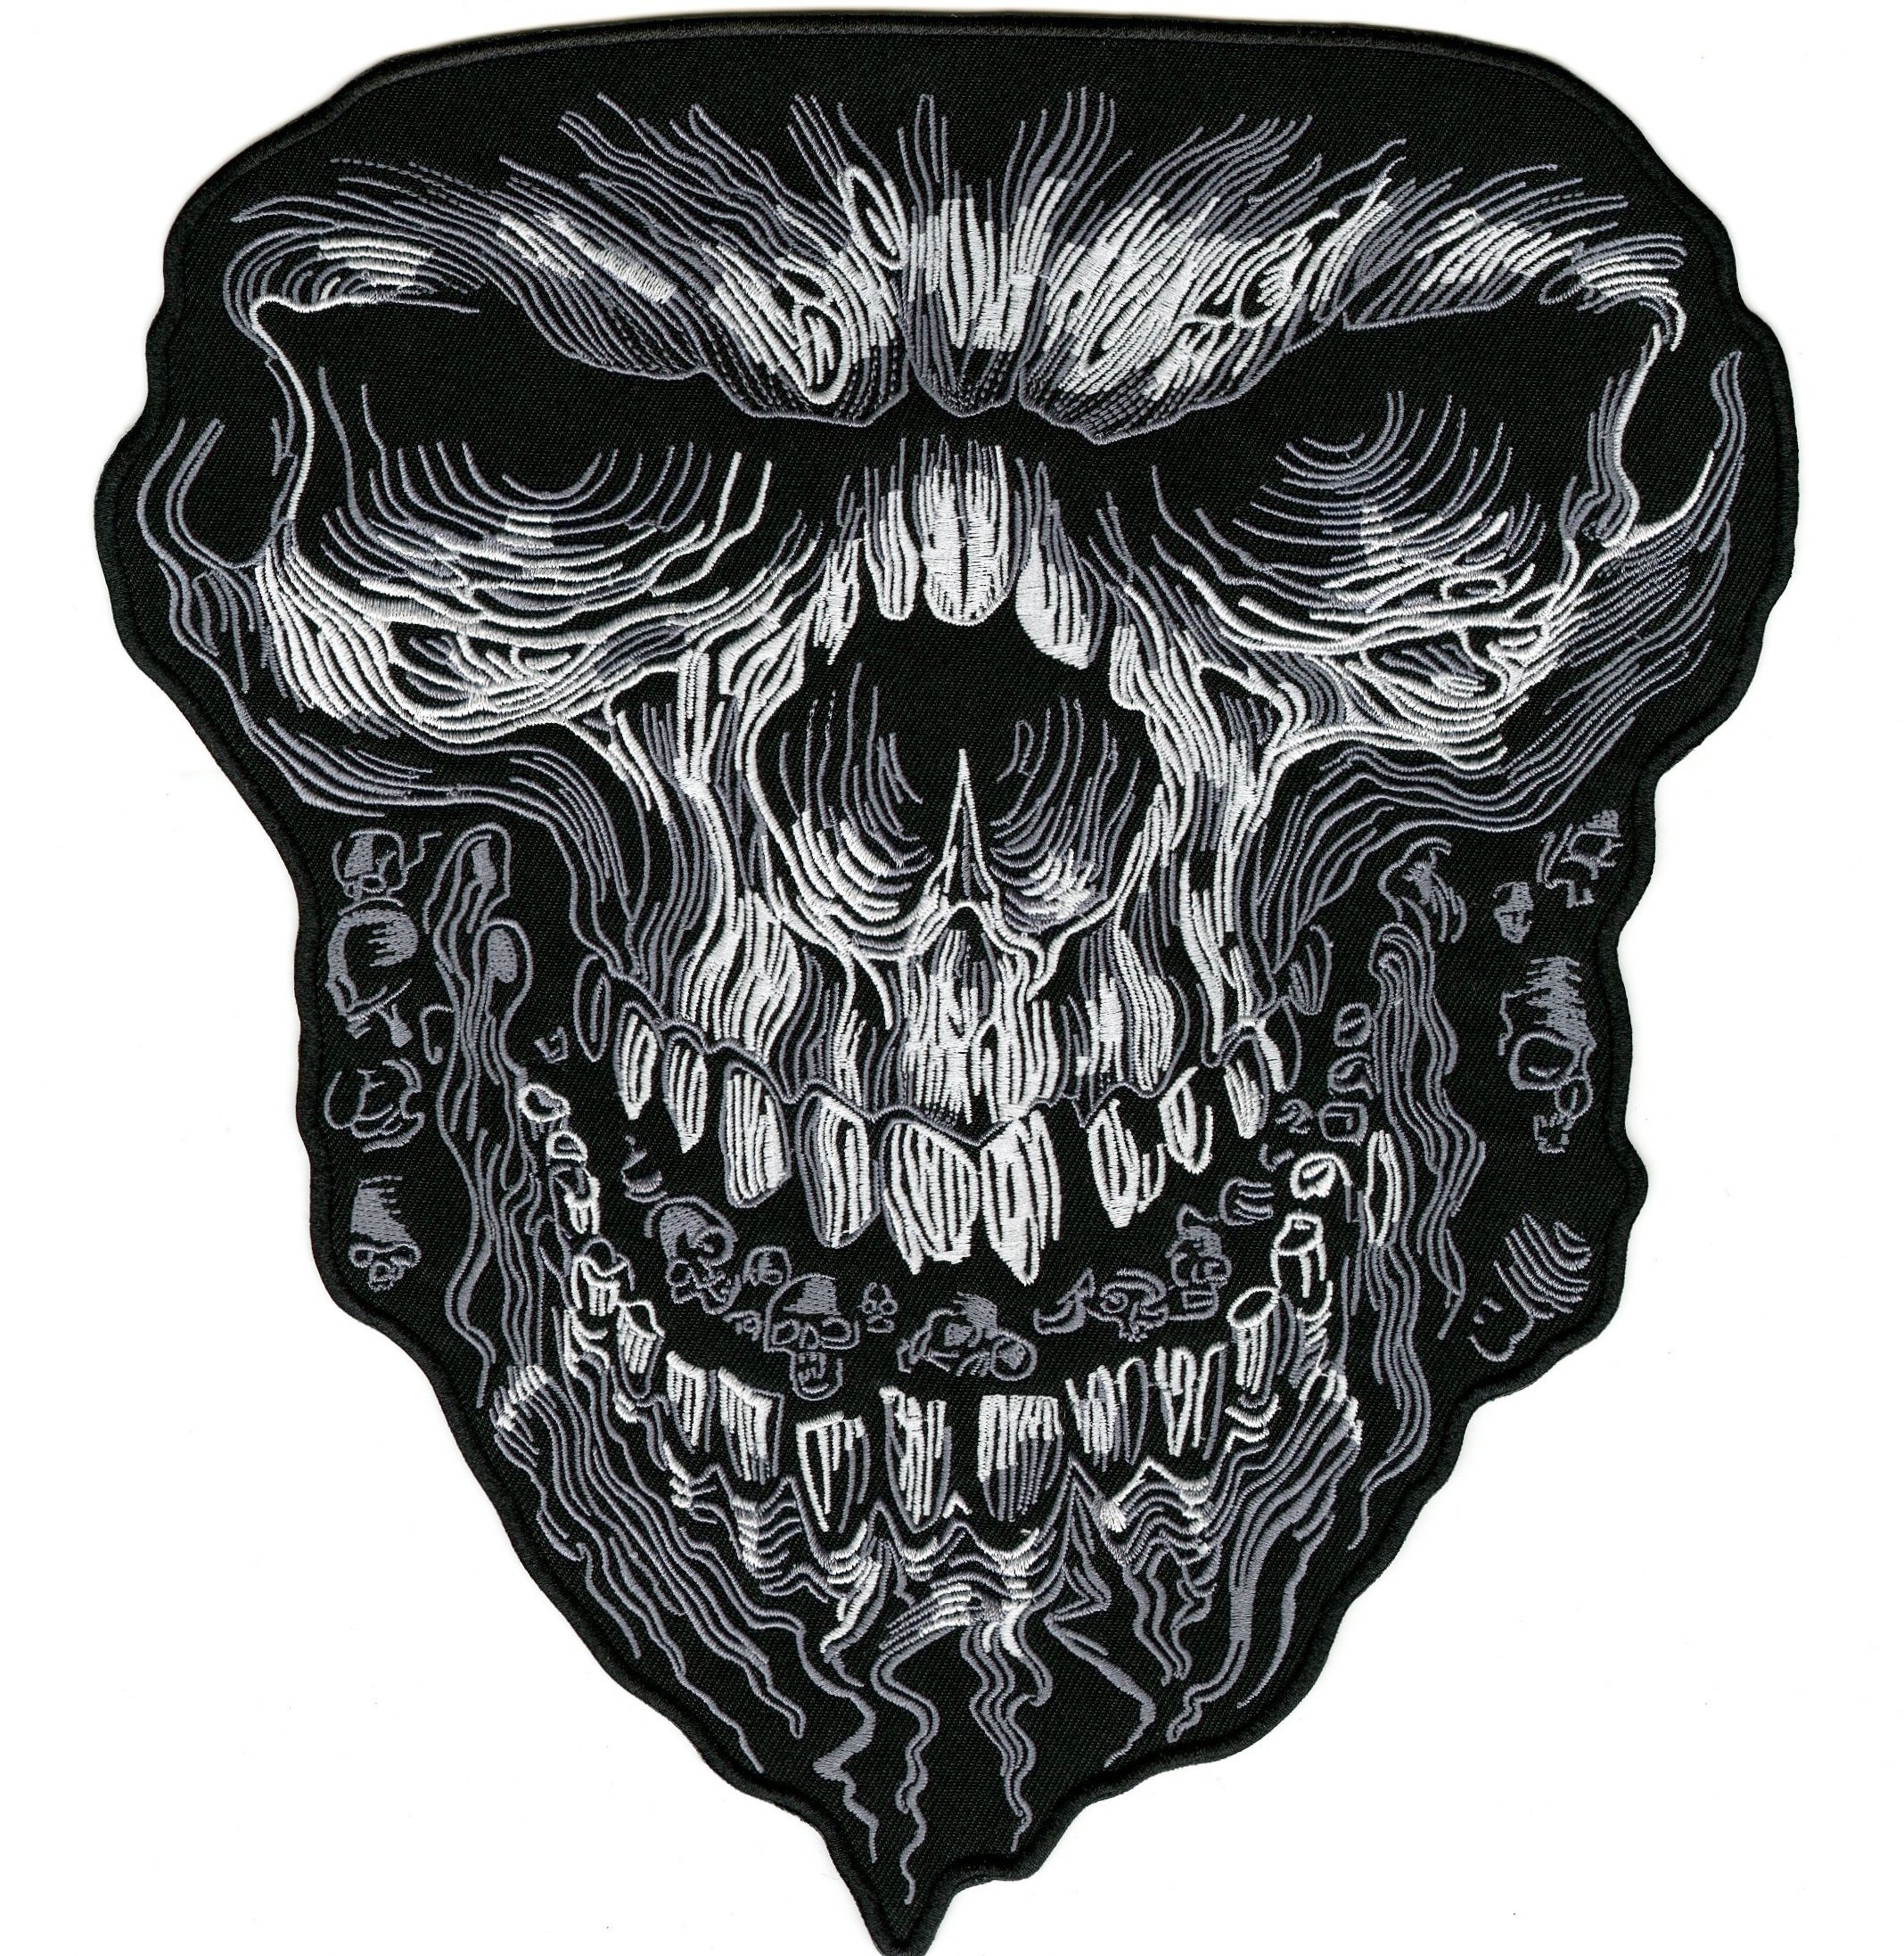 Huge Evil Skull | Iron On Mean Embroidered Motorcycle Back Patch Large - by Nixon Thread Co. (11'') by Nixon Thread Co.